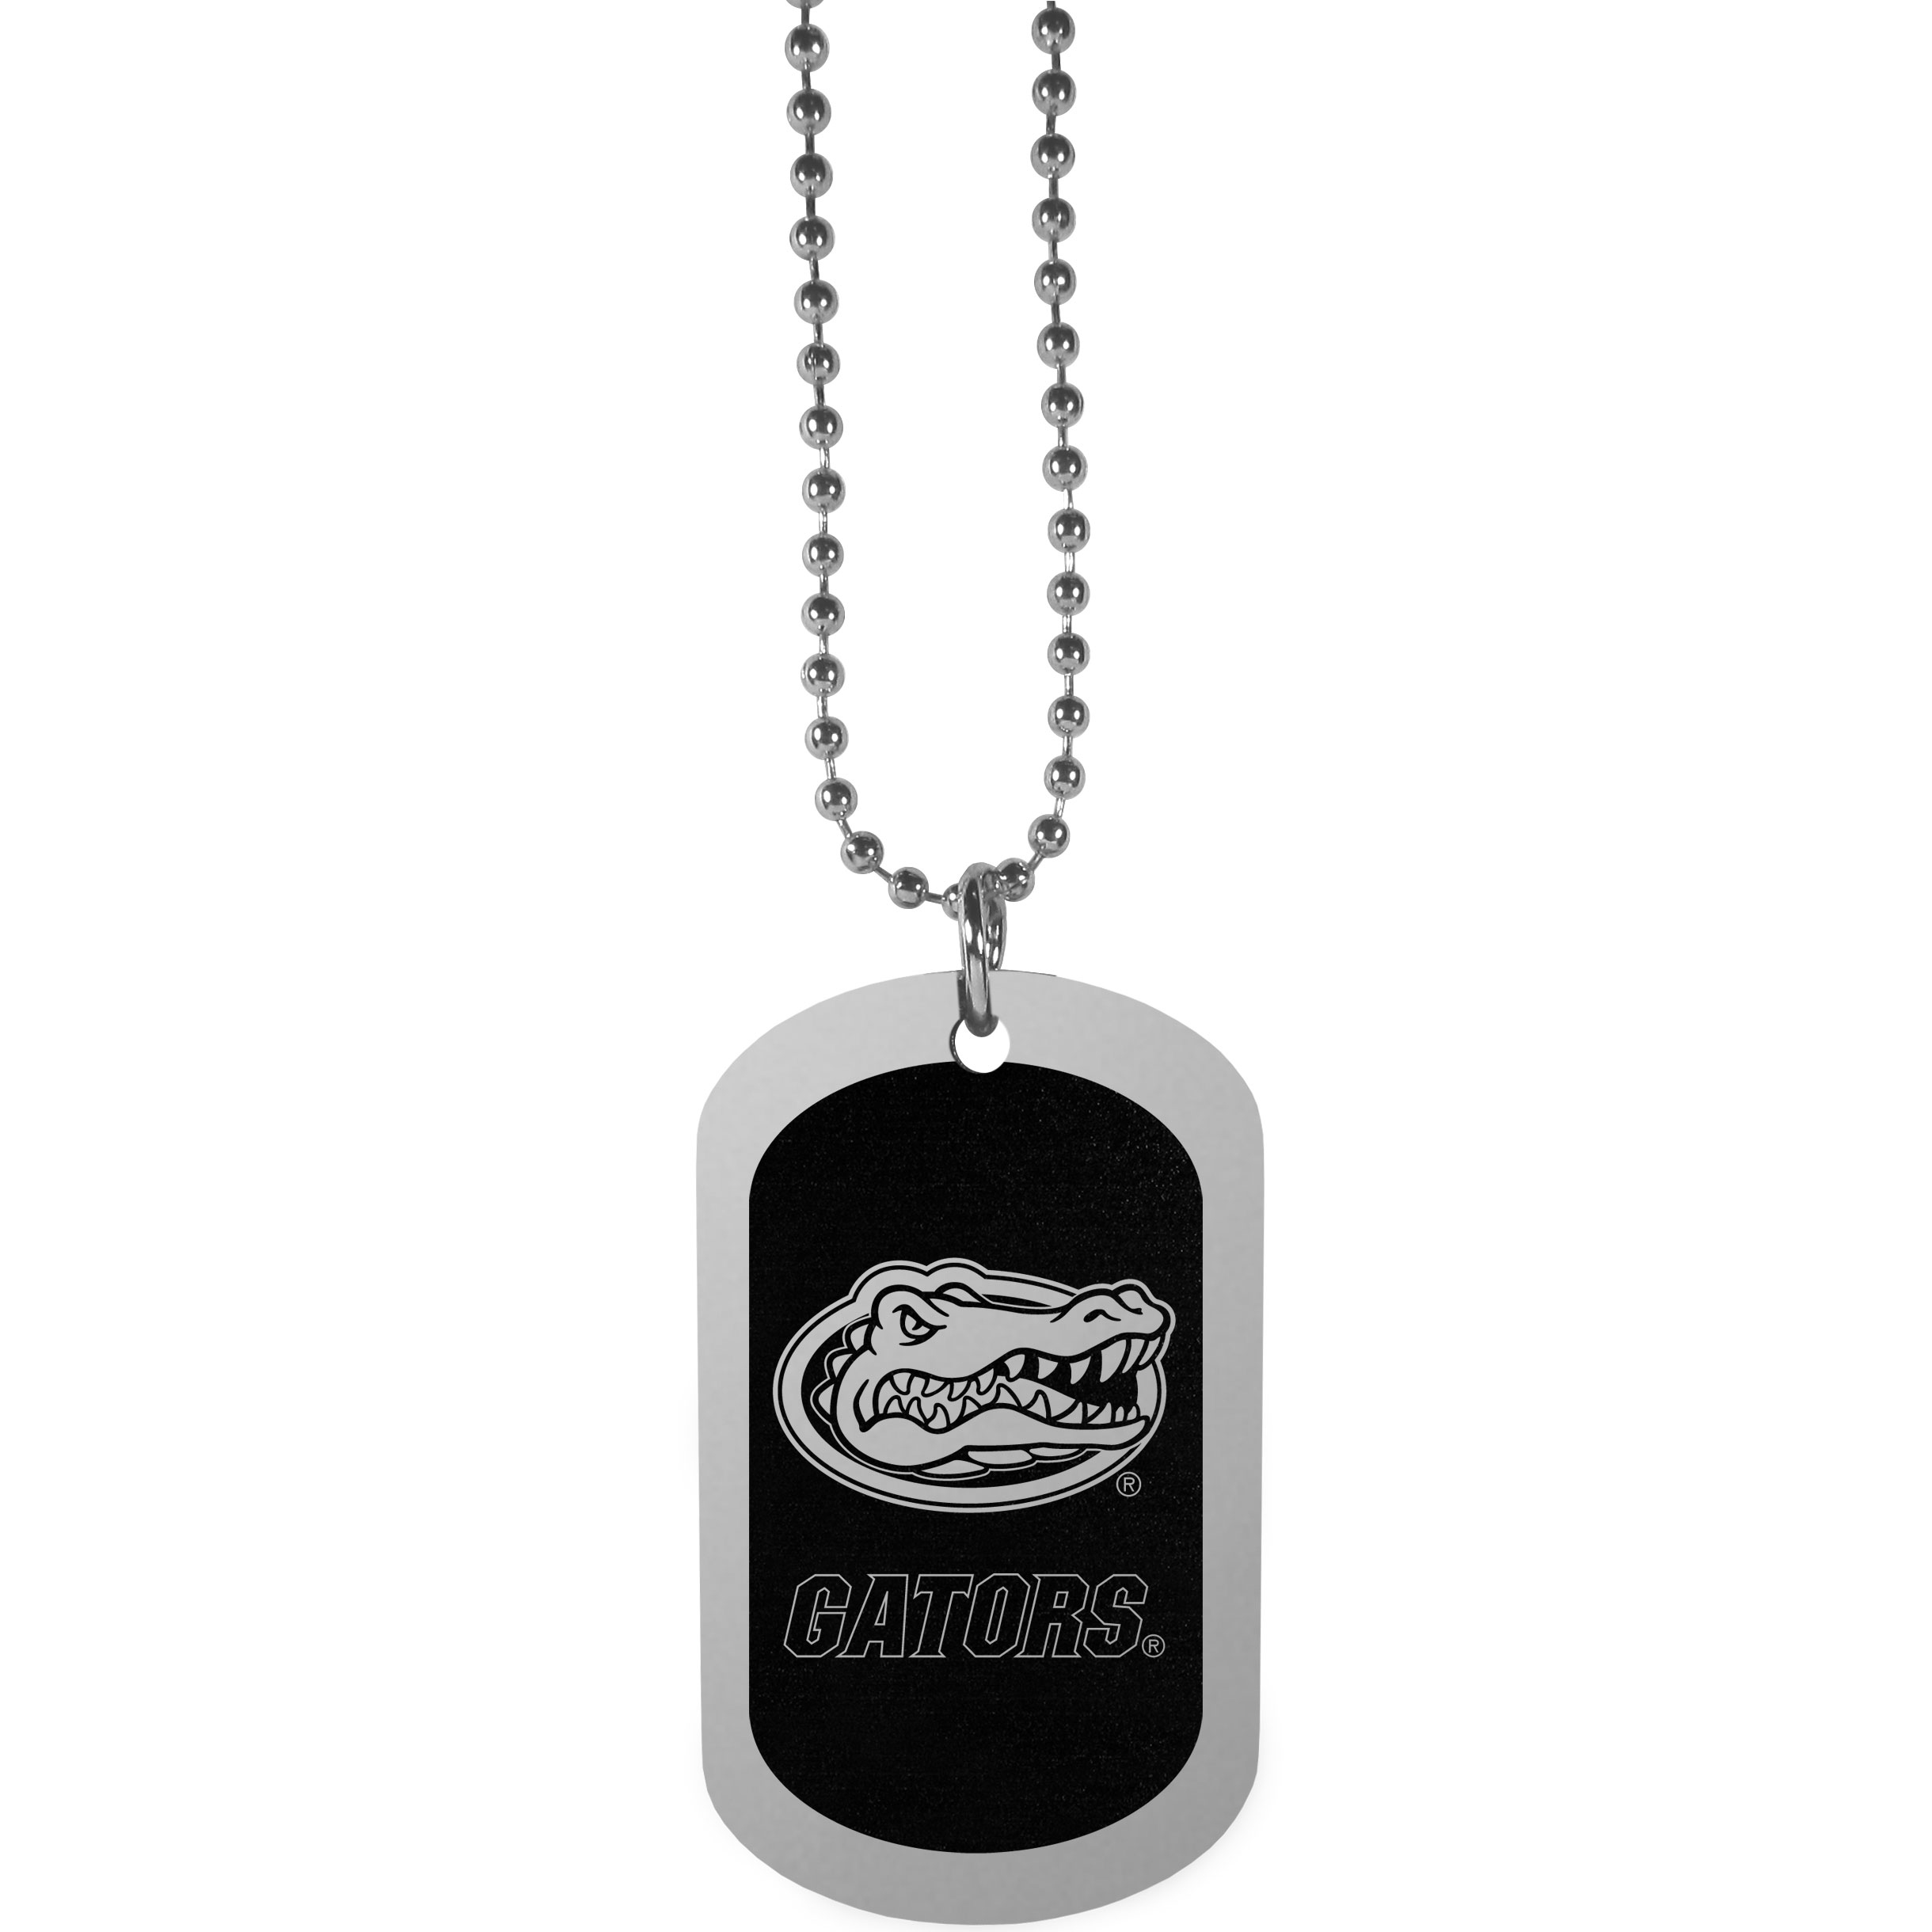 Florida Gators Chrome Tag Necklace - Dog tag necklaces are a fashion statement that is here to stay. The sporty version of the classic tag features a black printed over a high polish tag to create a bold and sporty look. The tag comes on a 26 inch ball chain with a ball and joint clasp. Any Florida Gators would be proud to wear this attractive fashion accessory.